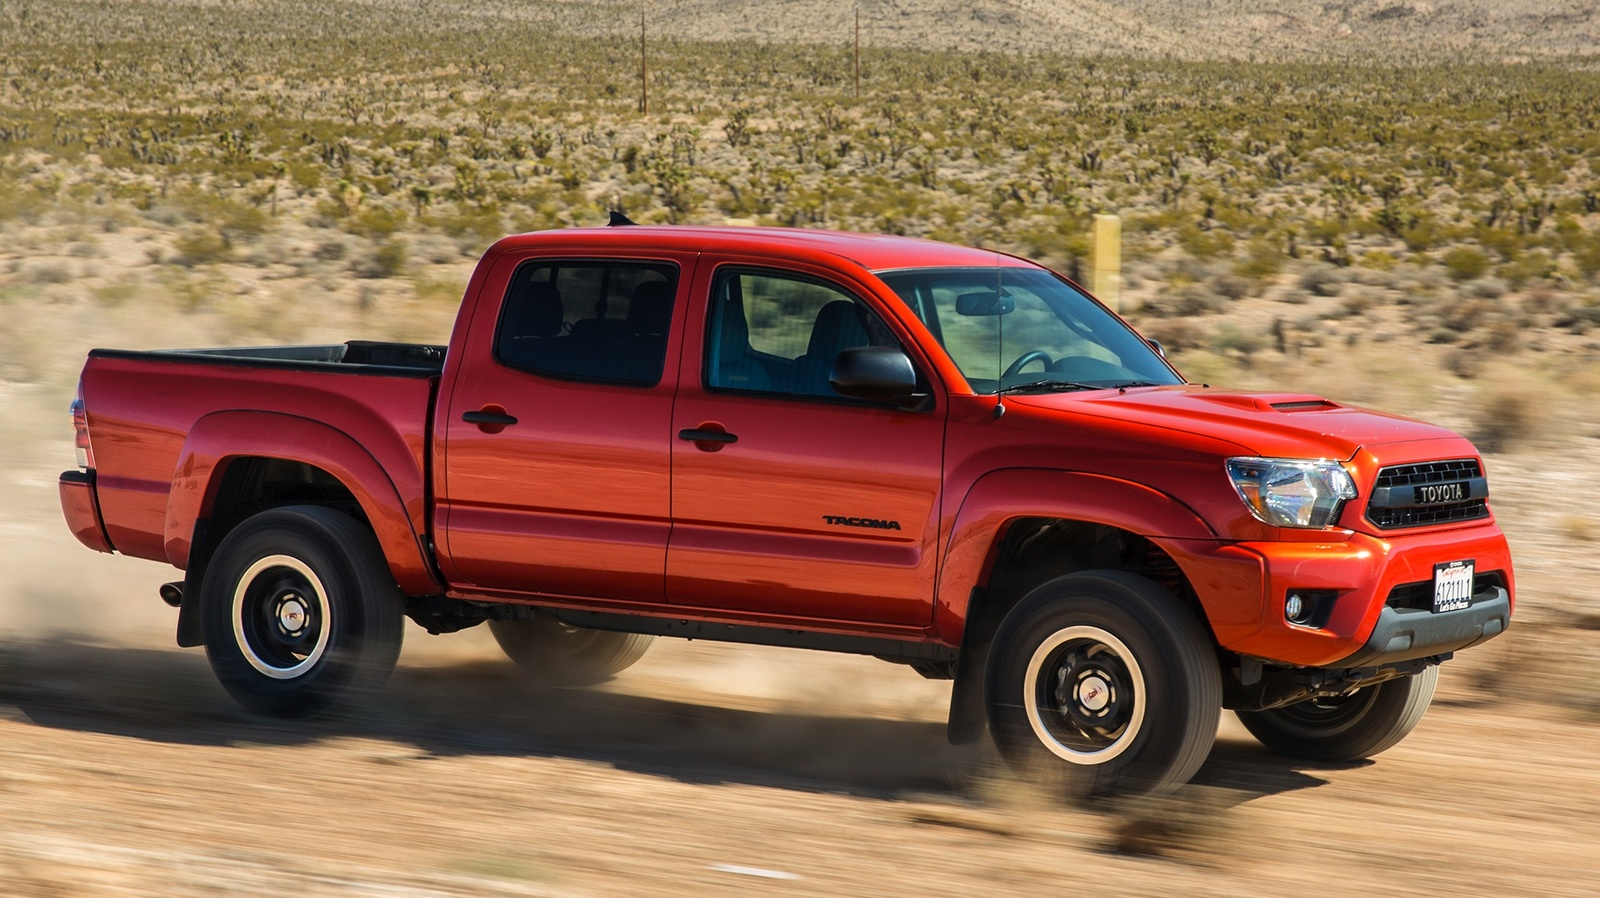 2015 toyota tacoma information and photos zombiedrive. Black Bedroom Furniture Sets. Home Design Ideas